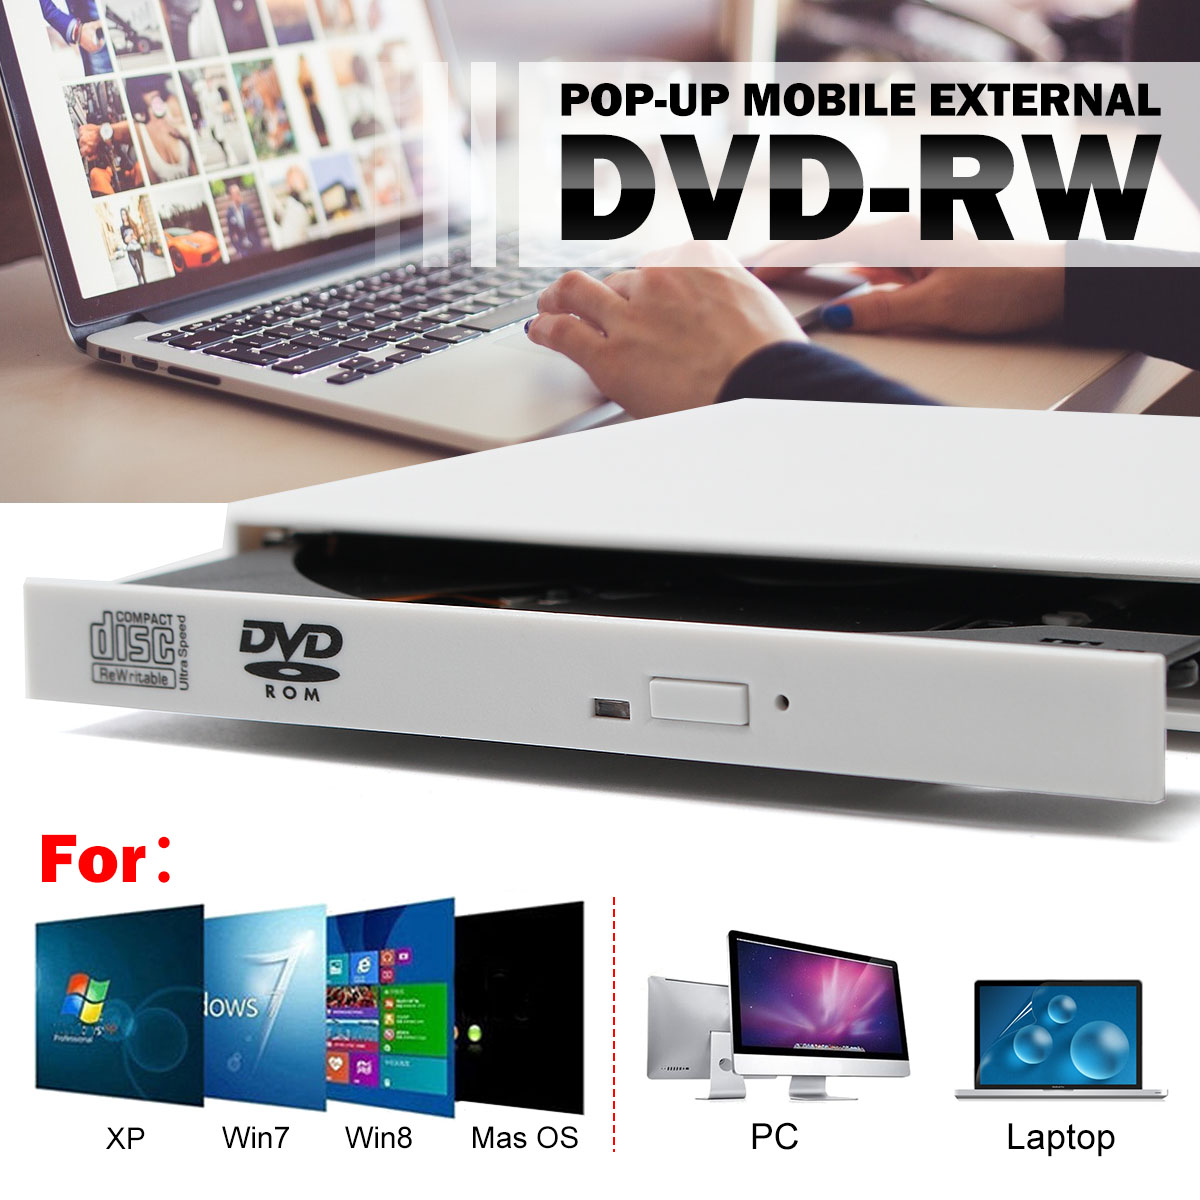 USB 2.0 Portable Ultra mince externe Slot-in DVD-RW CD-RW lecteur CD DVD ROM lecteur graveur graveur pour PC